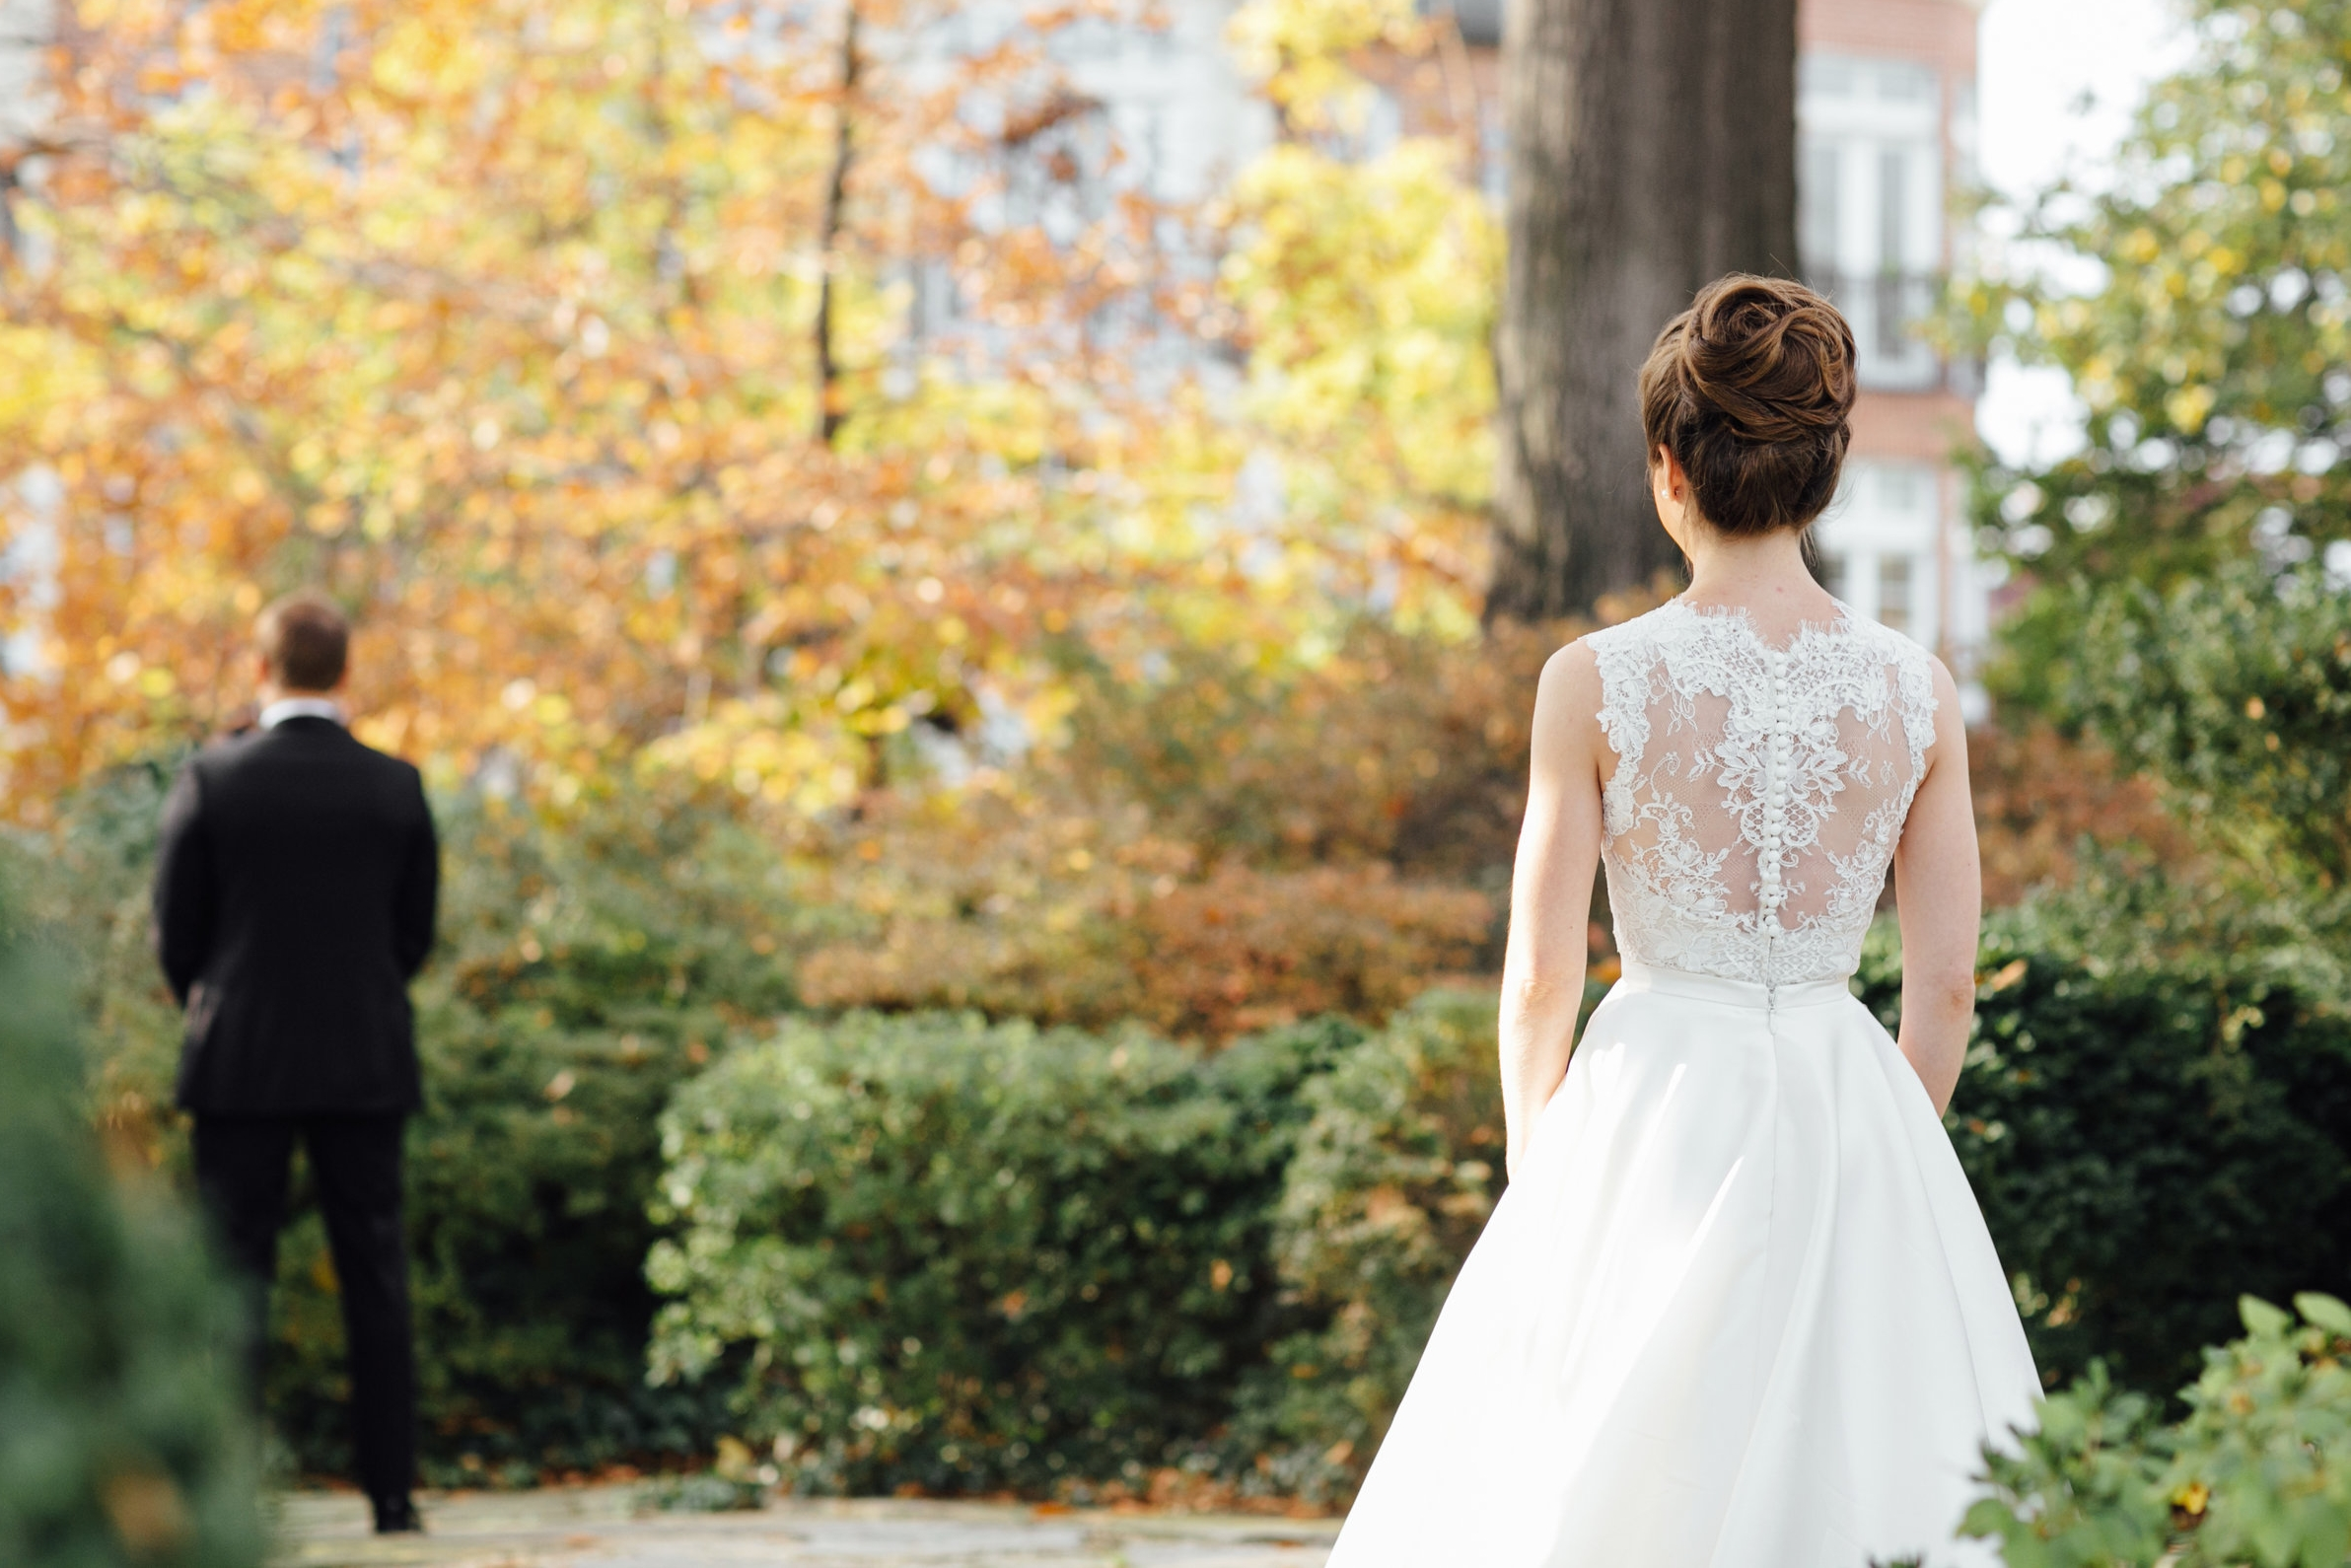 First Look with bride and groom at Meridian House in DC - Maria Vicencio Photography Weddings